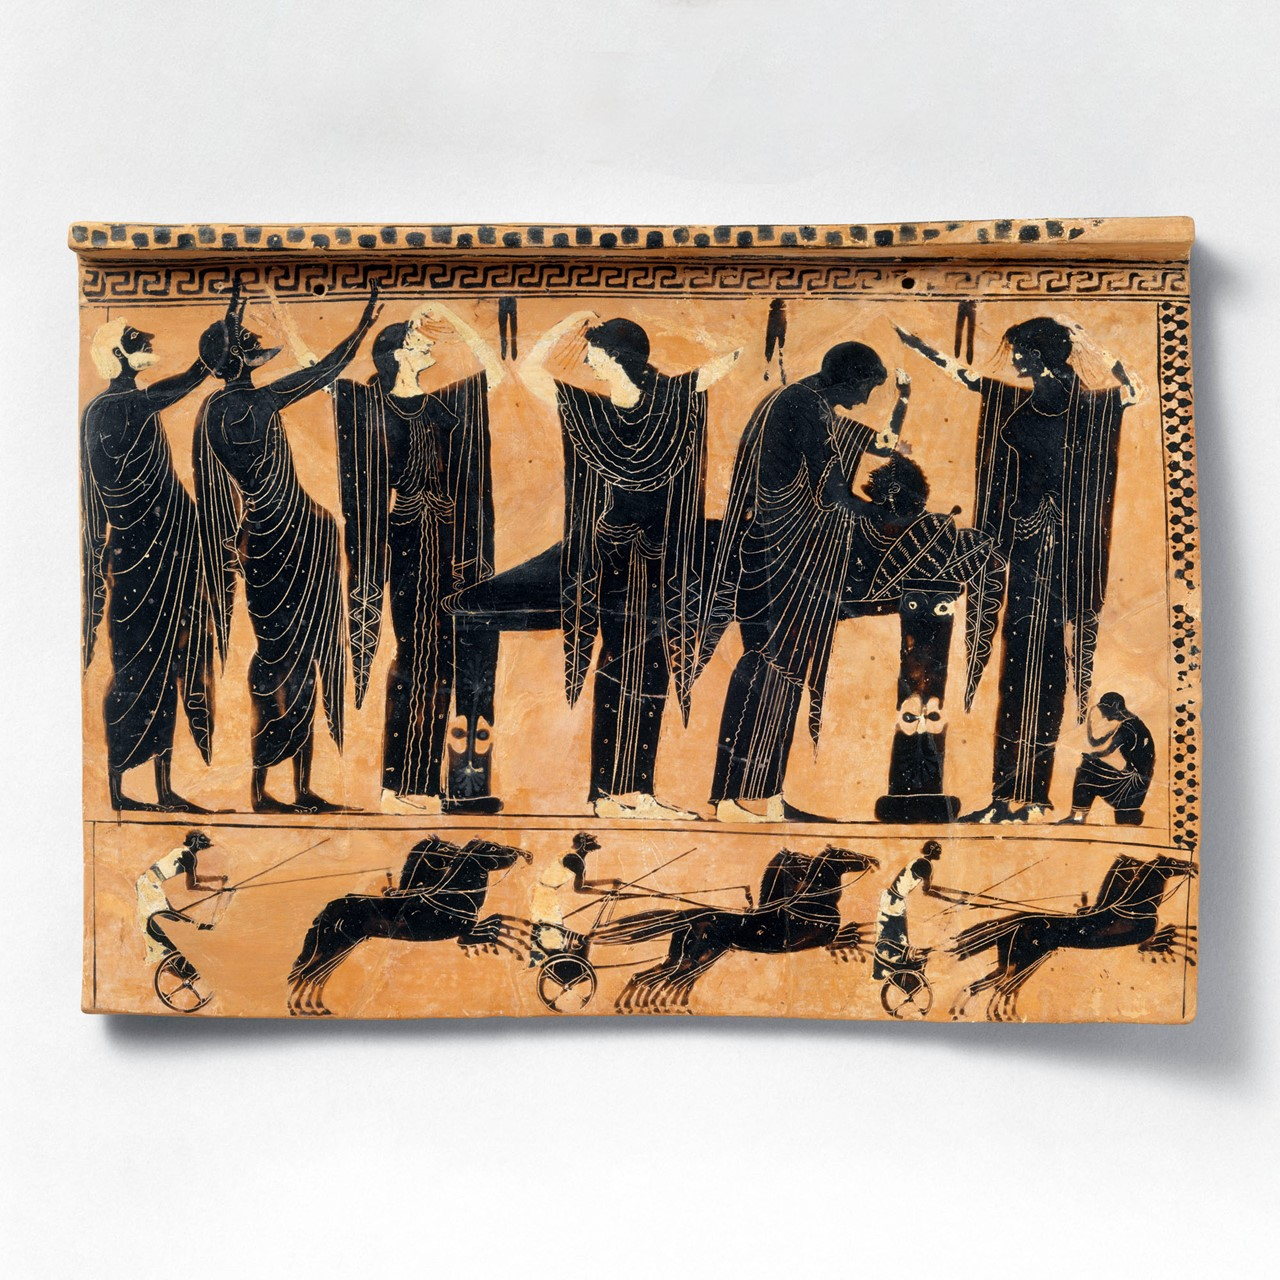 Black figure terracotta of funerary practice in the Archaic period, c. 520 - 510 BC. Held by the Met Museum, Accession Number: 54.11.5